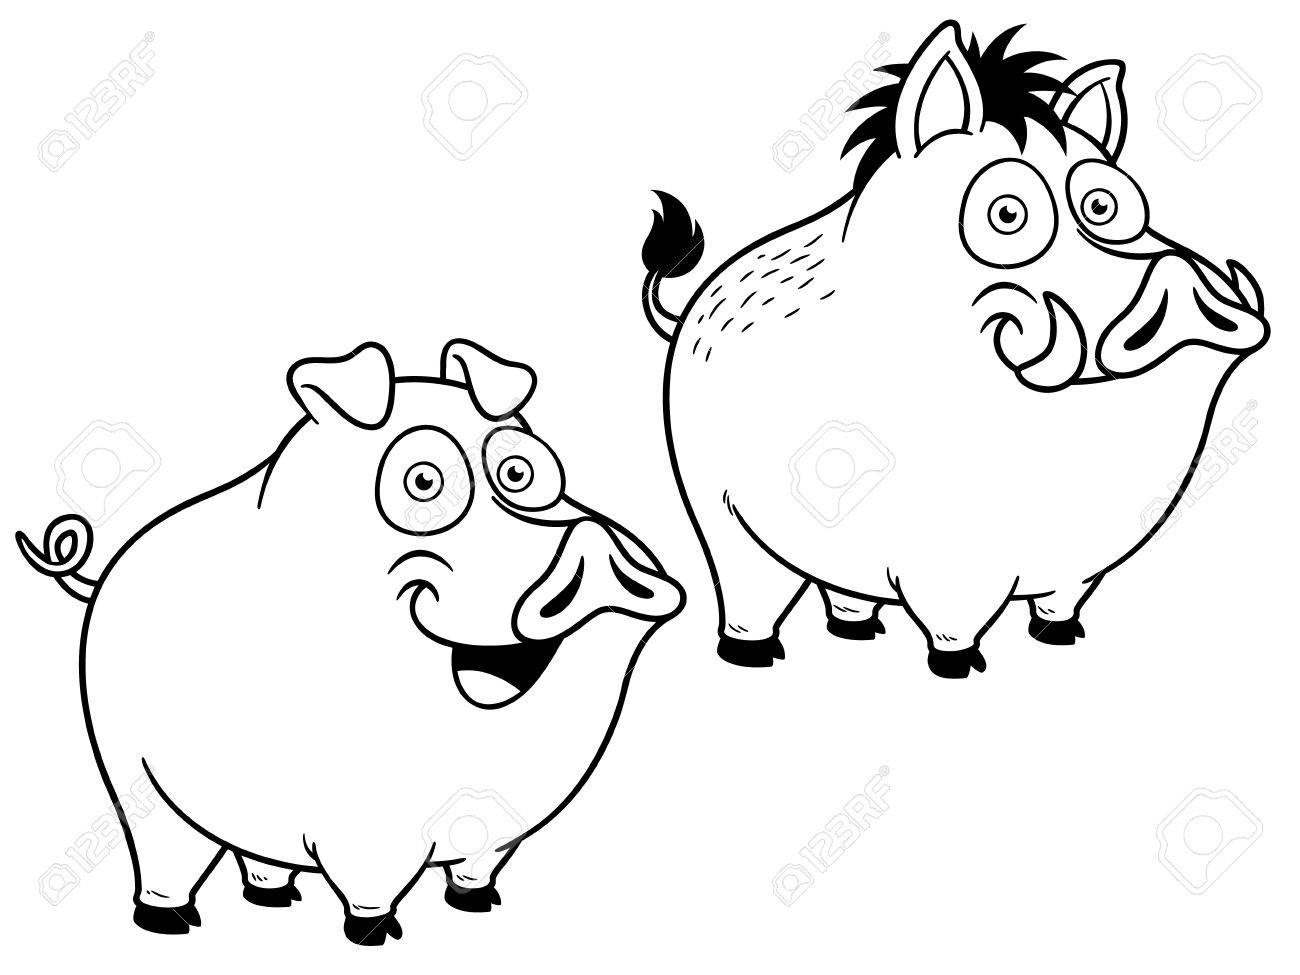 Vector Illustration Of Cartoon Pig - Coloring Book Royalty Free ...